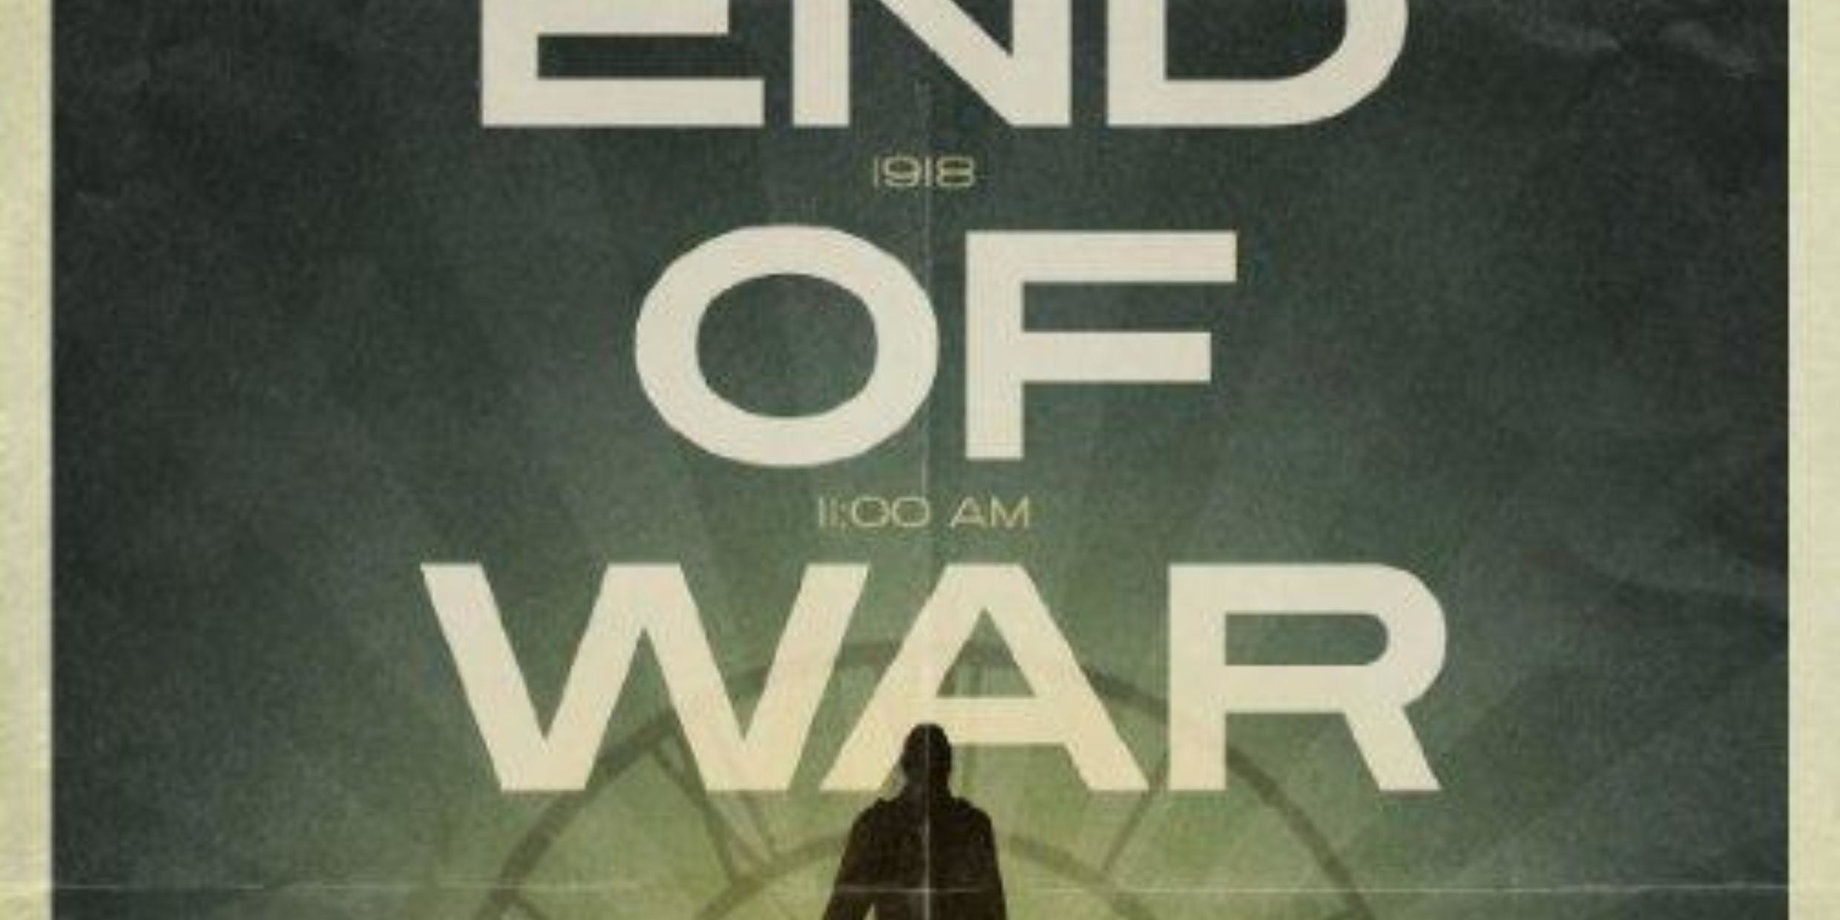 end of the war War's end treaty of guadalupe hidalgo by richard griswold del castillo the treaty of guadalupe hidalgo ended the us-mexican war signed on 2 february 1848, it is the oldest treaty still in force between the united states and mexico.